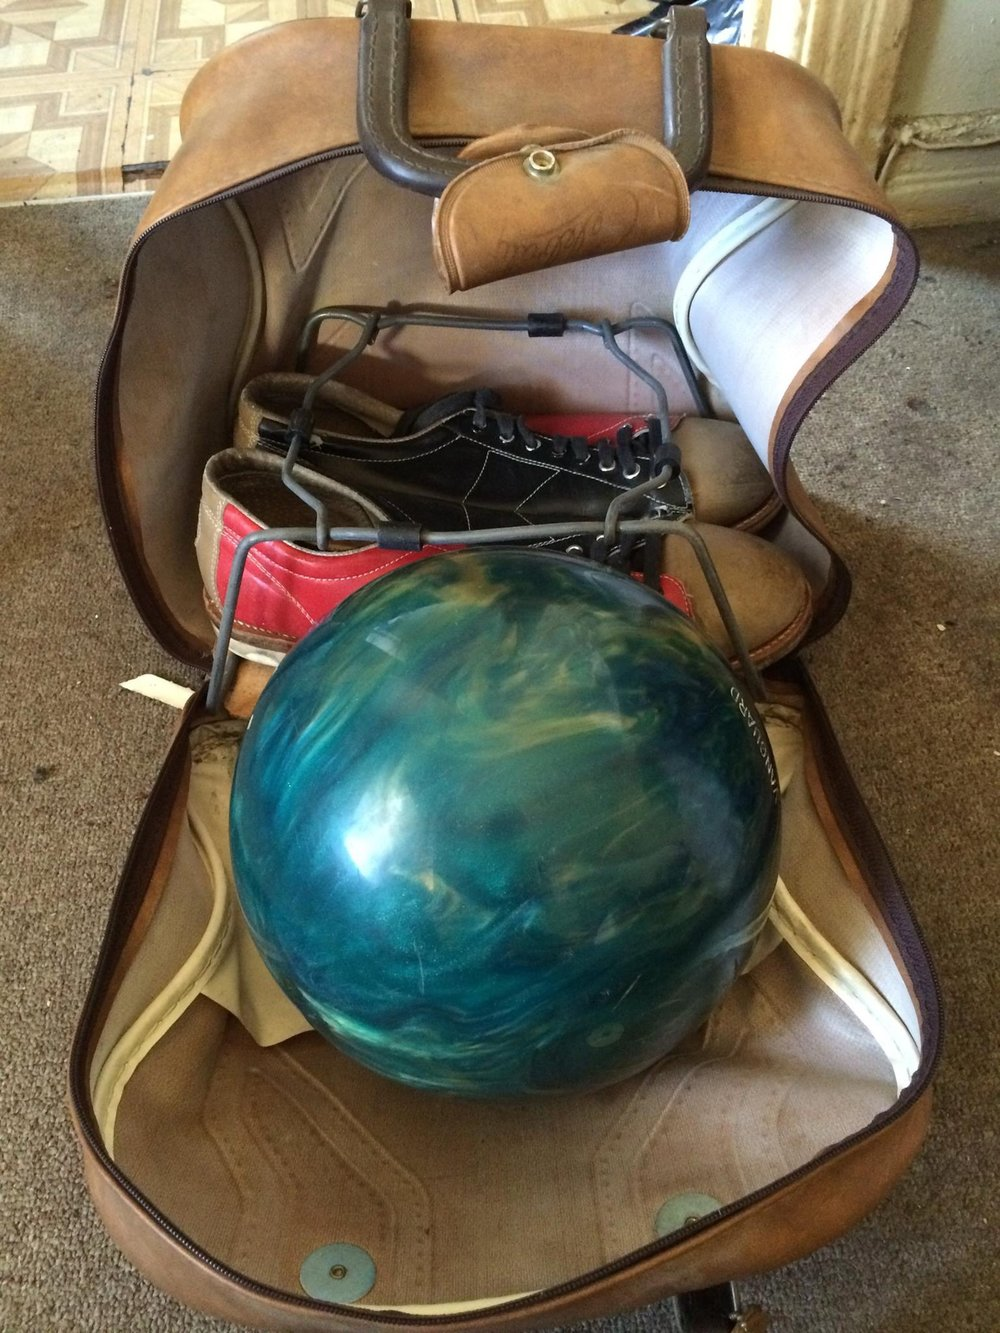 Of everything we've given him and he's lost, ruined or given back, this is the single thing Nick kept safe and in perfect condition. It is the vintage bowling ball and shoes Craig gave him for his sixteenth birthday. He insisted on carrying them on the plane.